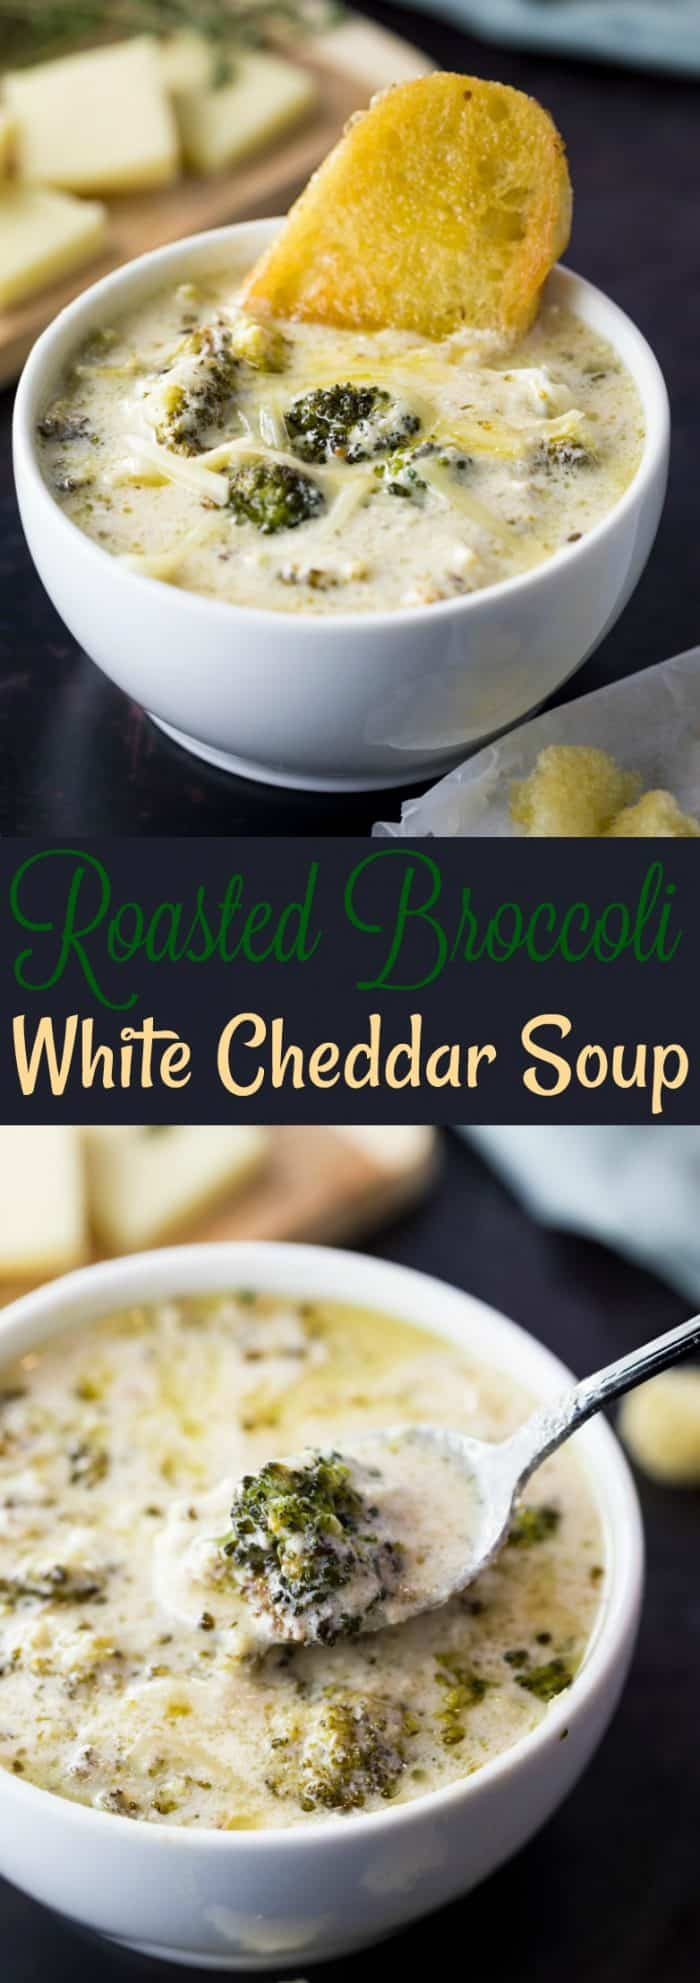 Creamy white cheddar cheese soup enriched with the flavors of perfectly roasted broccoli and melted Parmesan. | The Cozy Cook| #soup #broccoli #recipe #cheese #cheddar